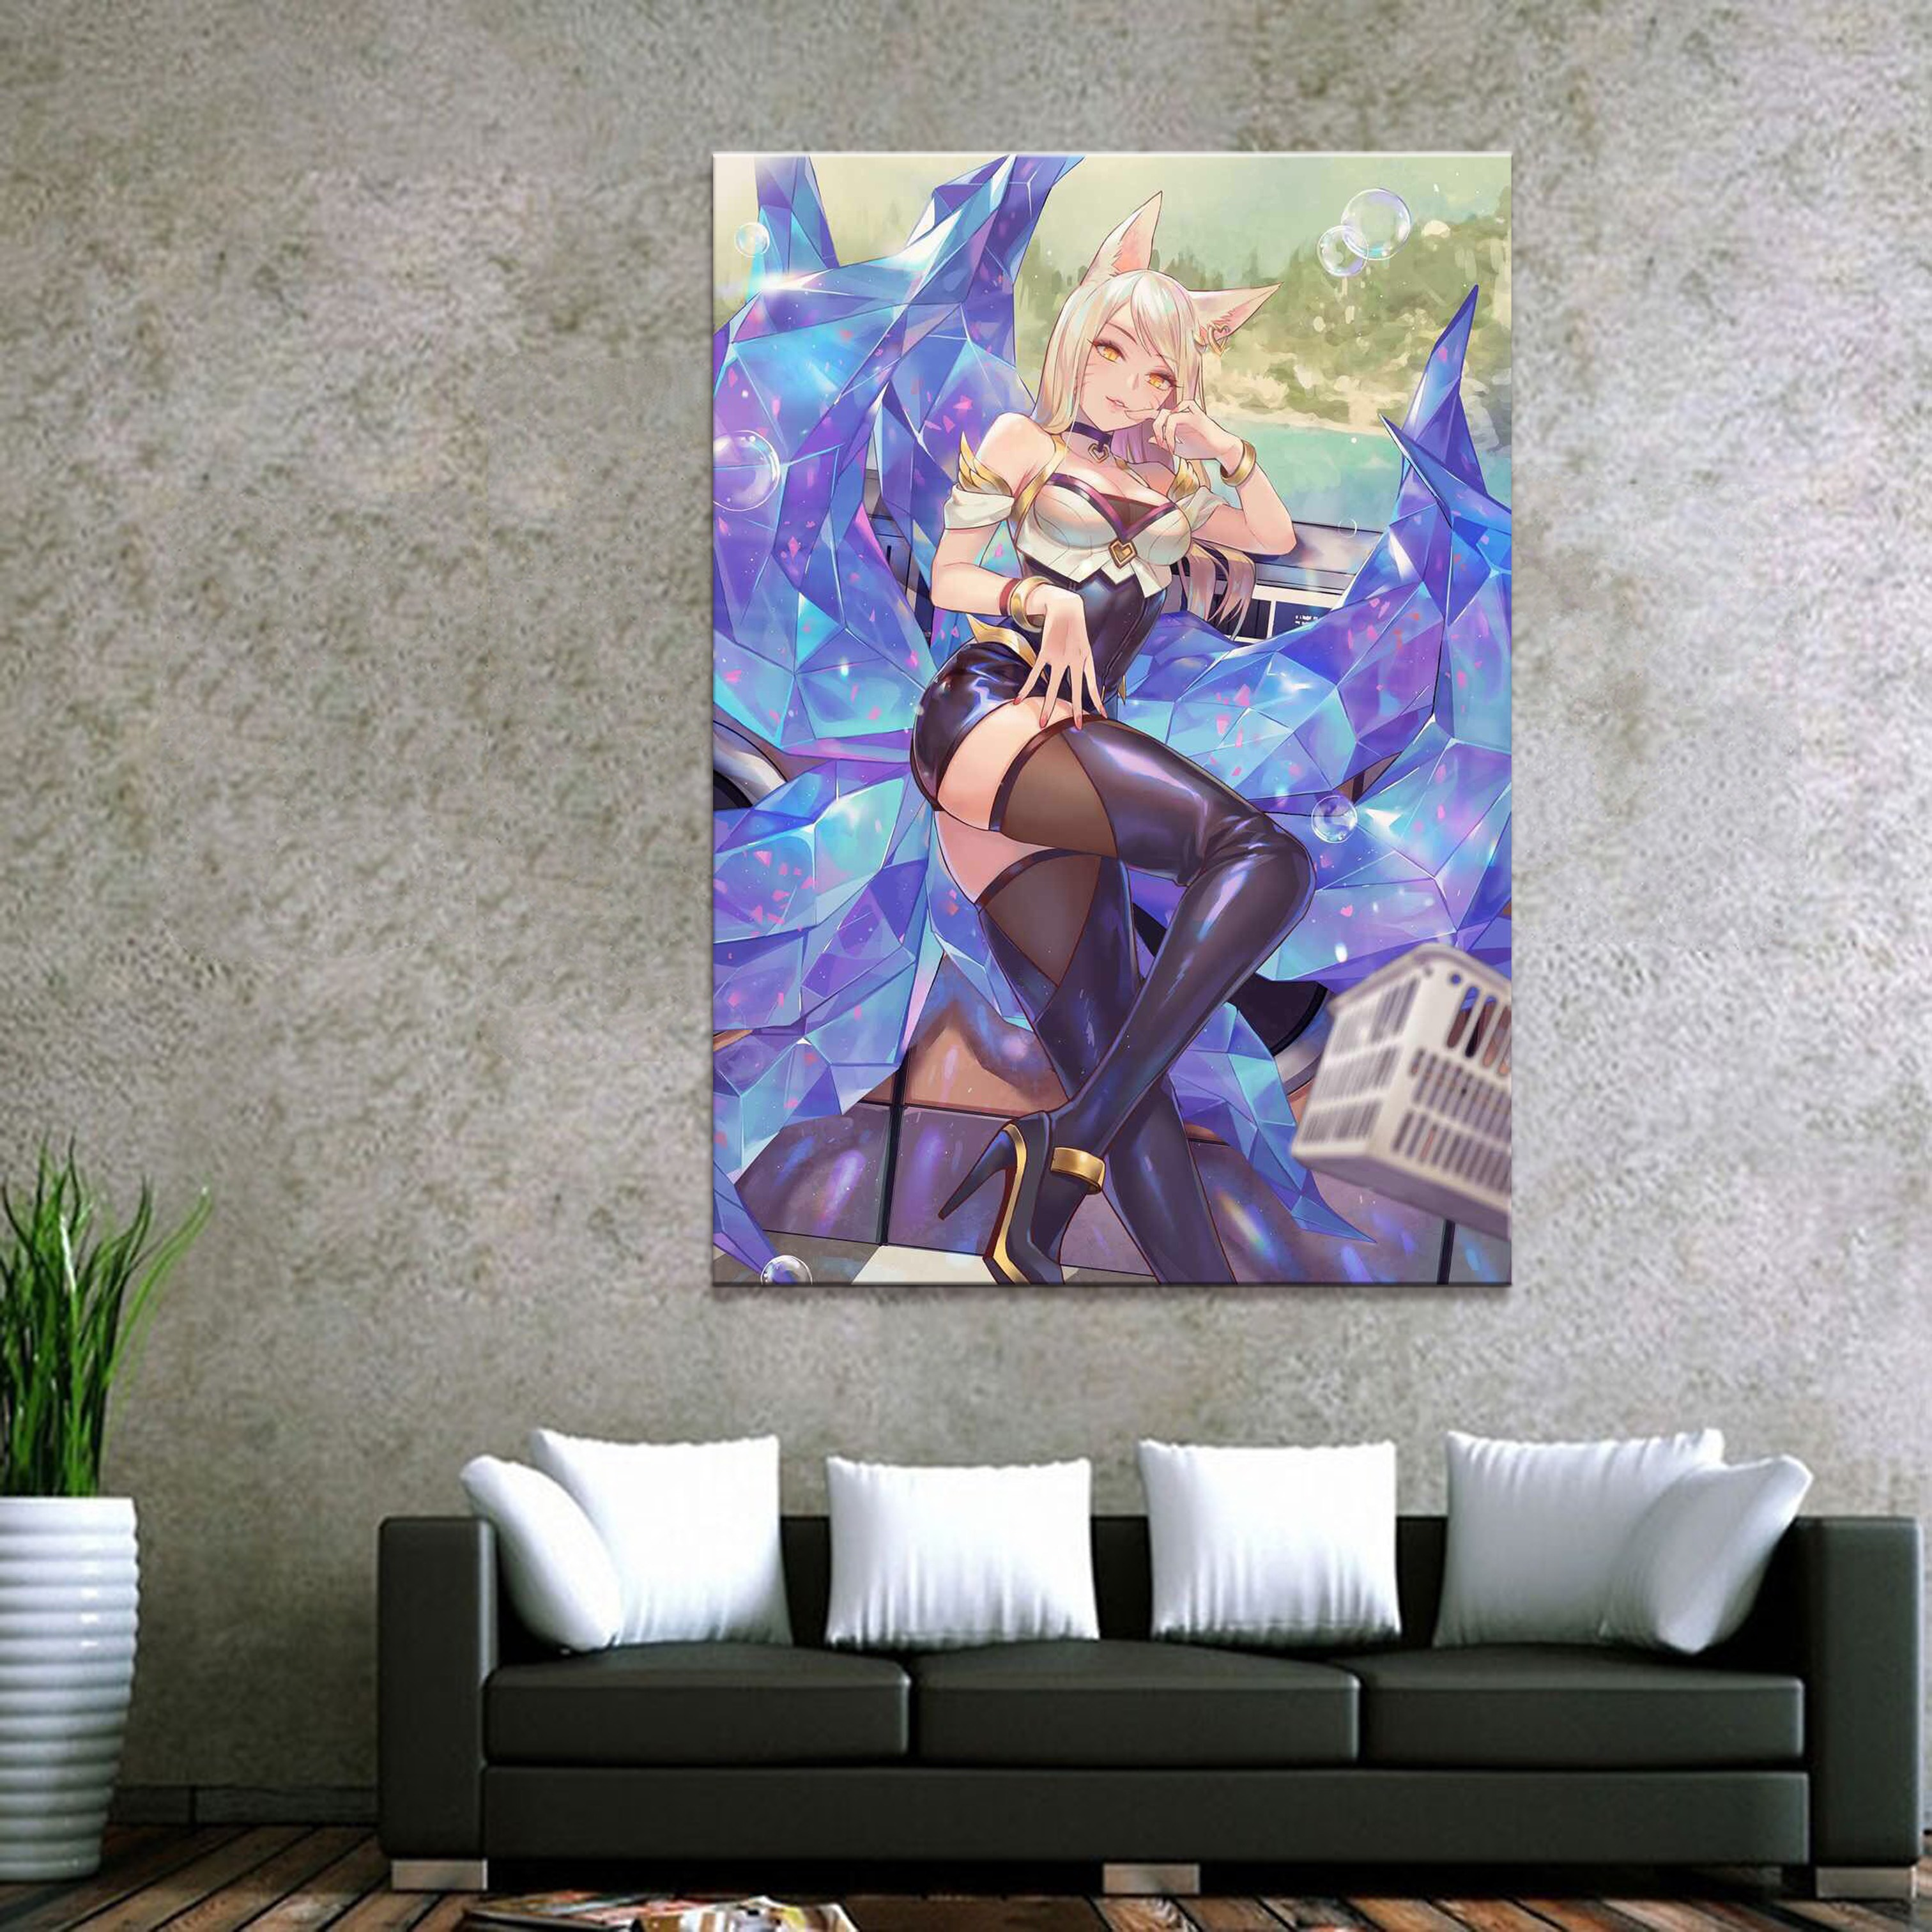 Home Decor Canvas League of Legends LOL Overwatch Game 1 Piece Sexy Ahri Art Poster Prints Picture Decoration Painting Wholesale